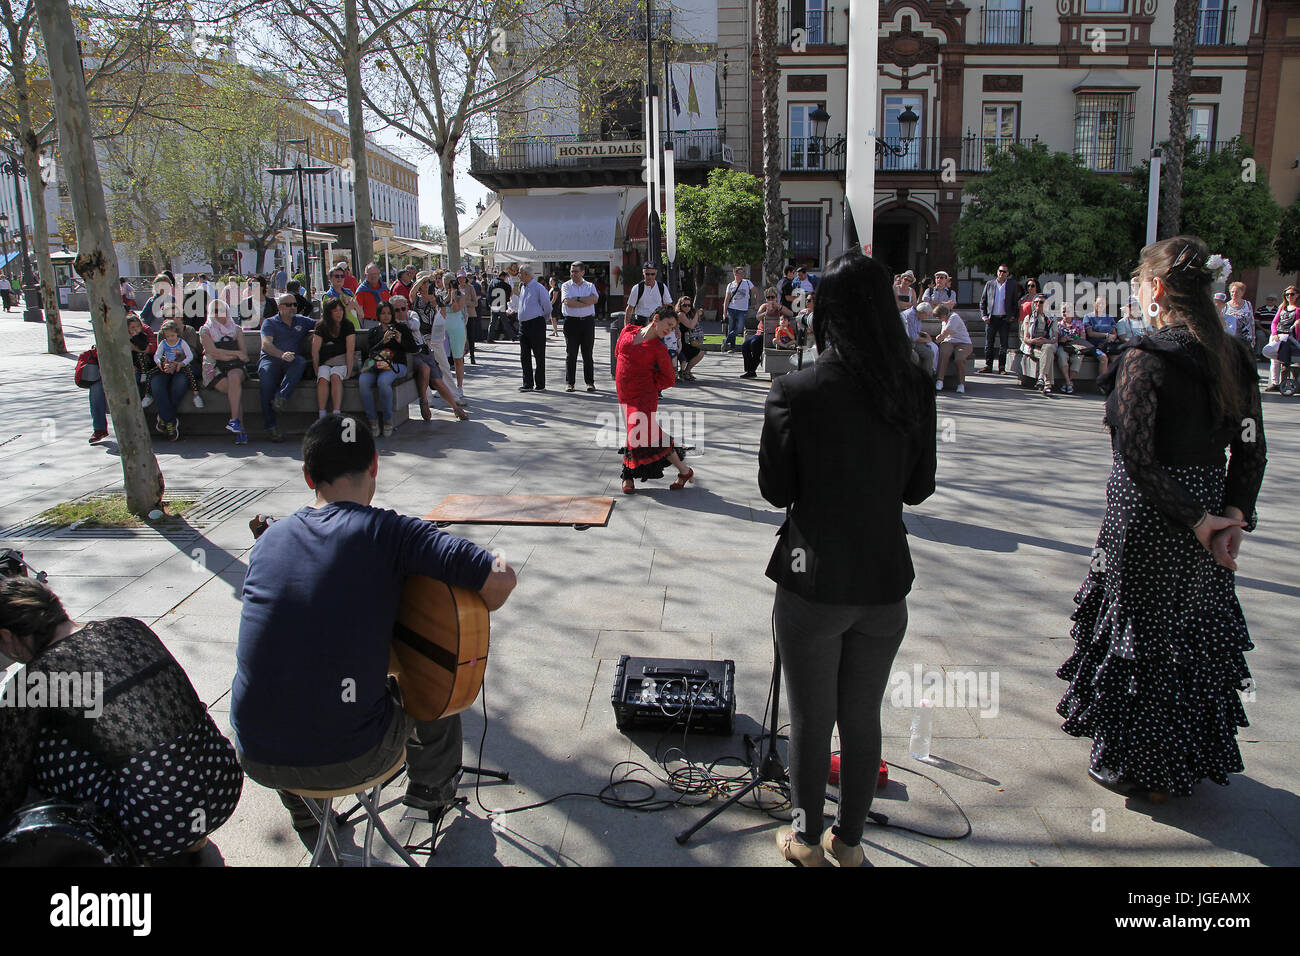 Flamenco dancers performing in the streets of Seville Spain - Stock Image